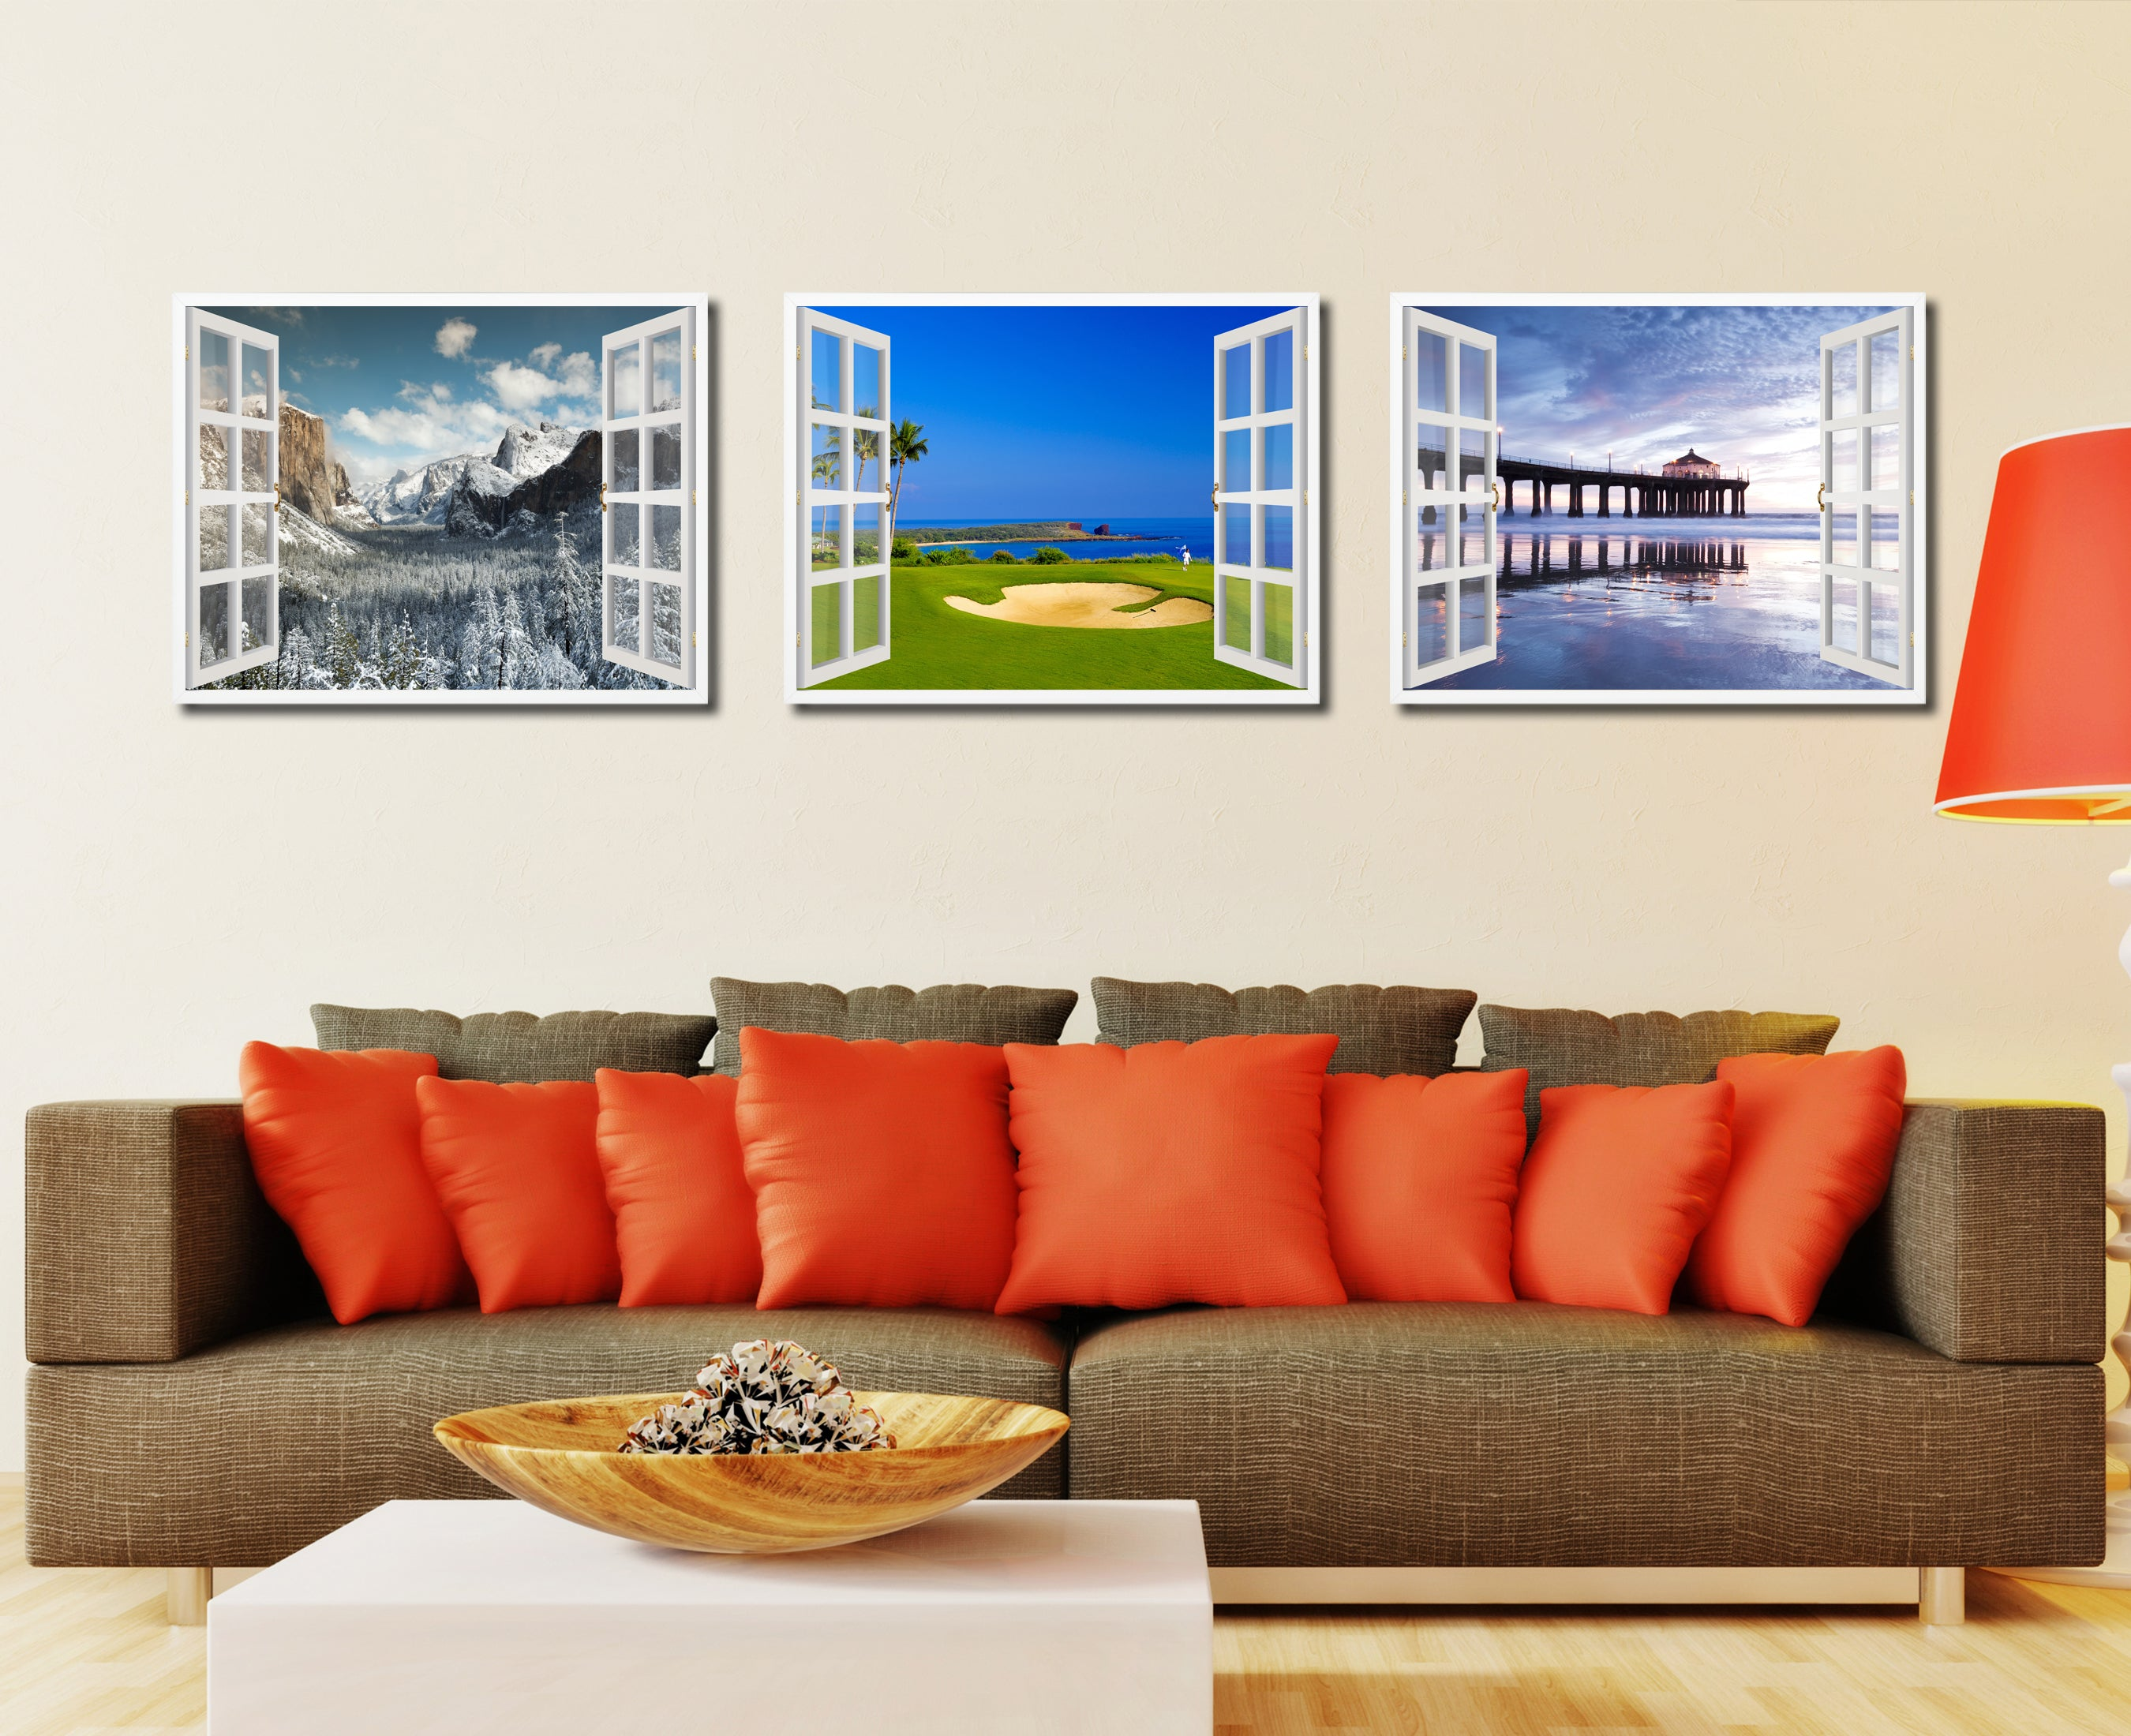 Coastal Golf Course Picture French Window Framed Canvas Print Home Decor Wall Art Collection